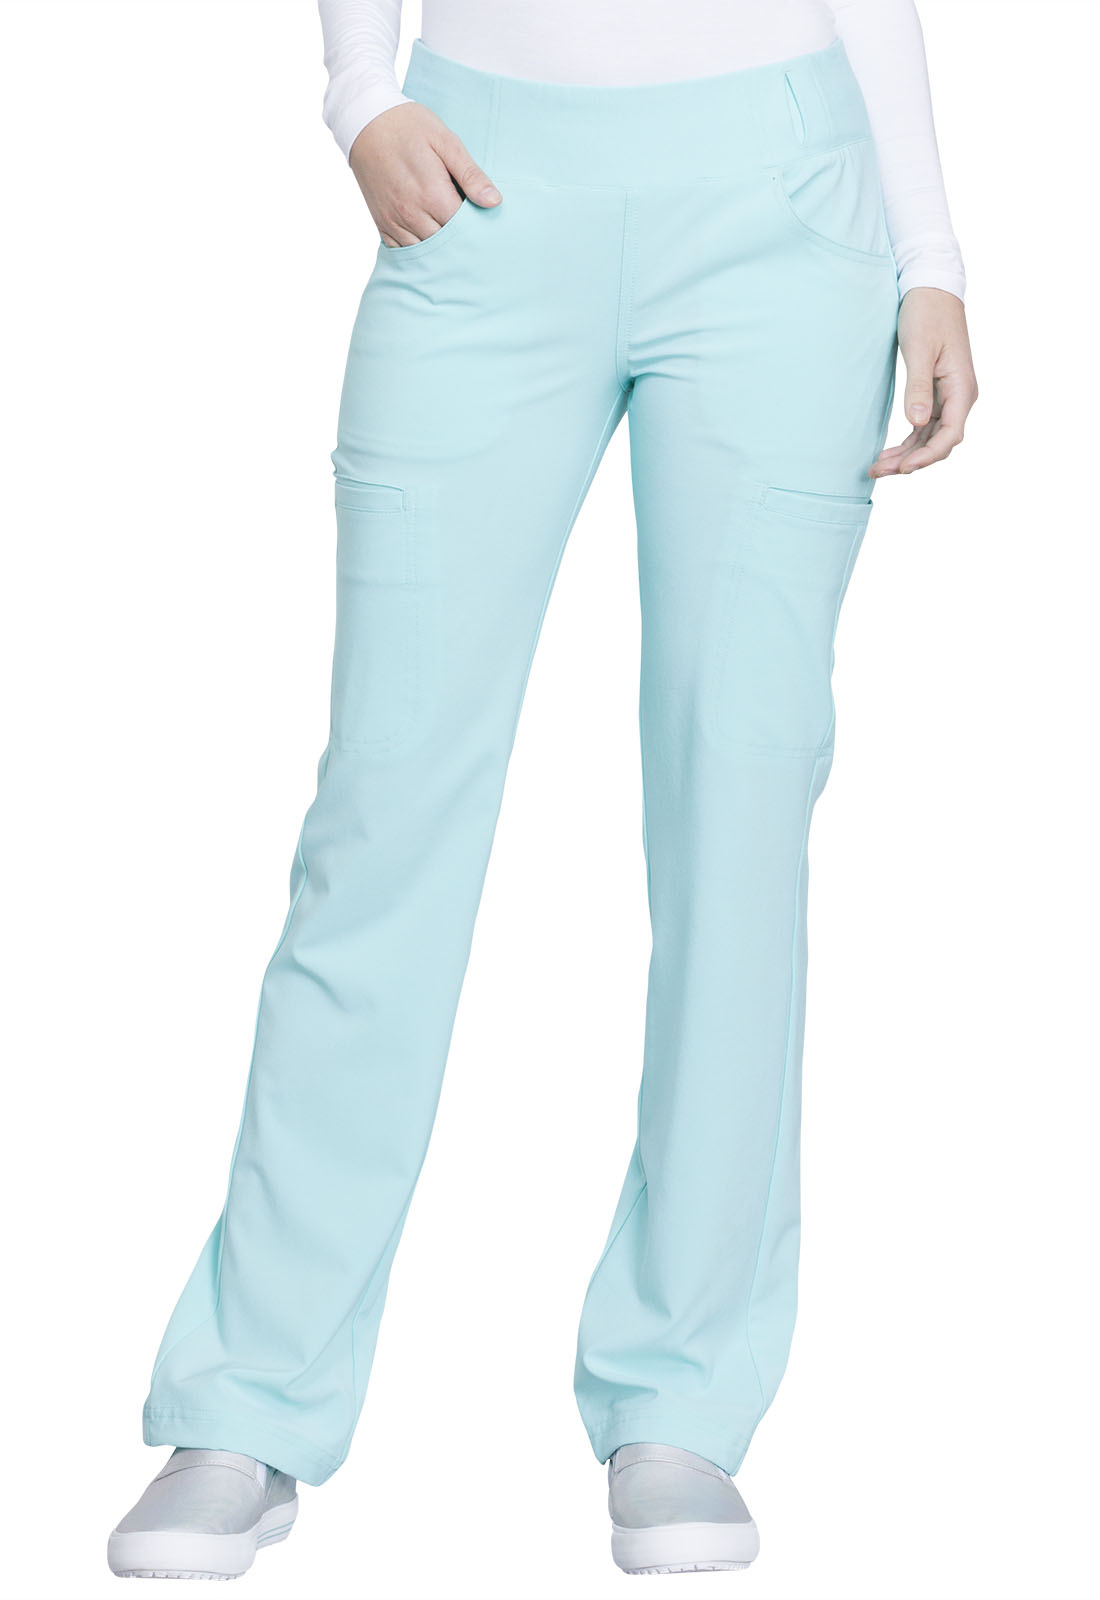 092e2ee825b iFlex Mid Rise Straight Leg Pull-on Pant in Ocean Wave CK002-OCSH ...